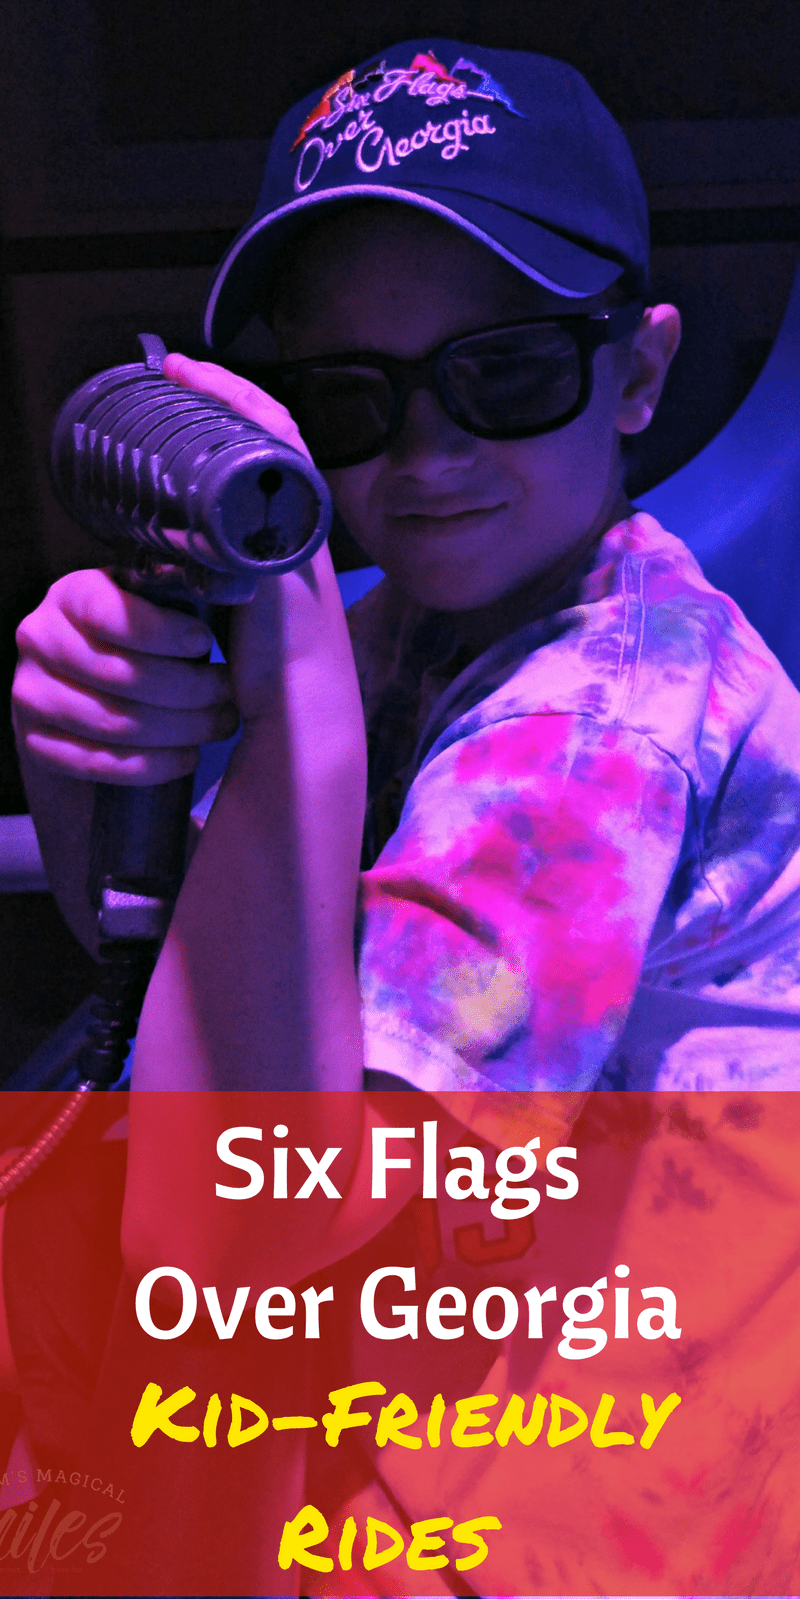 There are plenty of kid-friendly rides at Six Flags Over Georgia! You'll find family rides that everyone can enjoy.